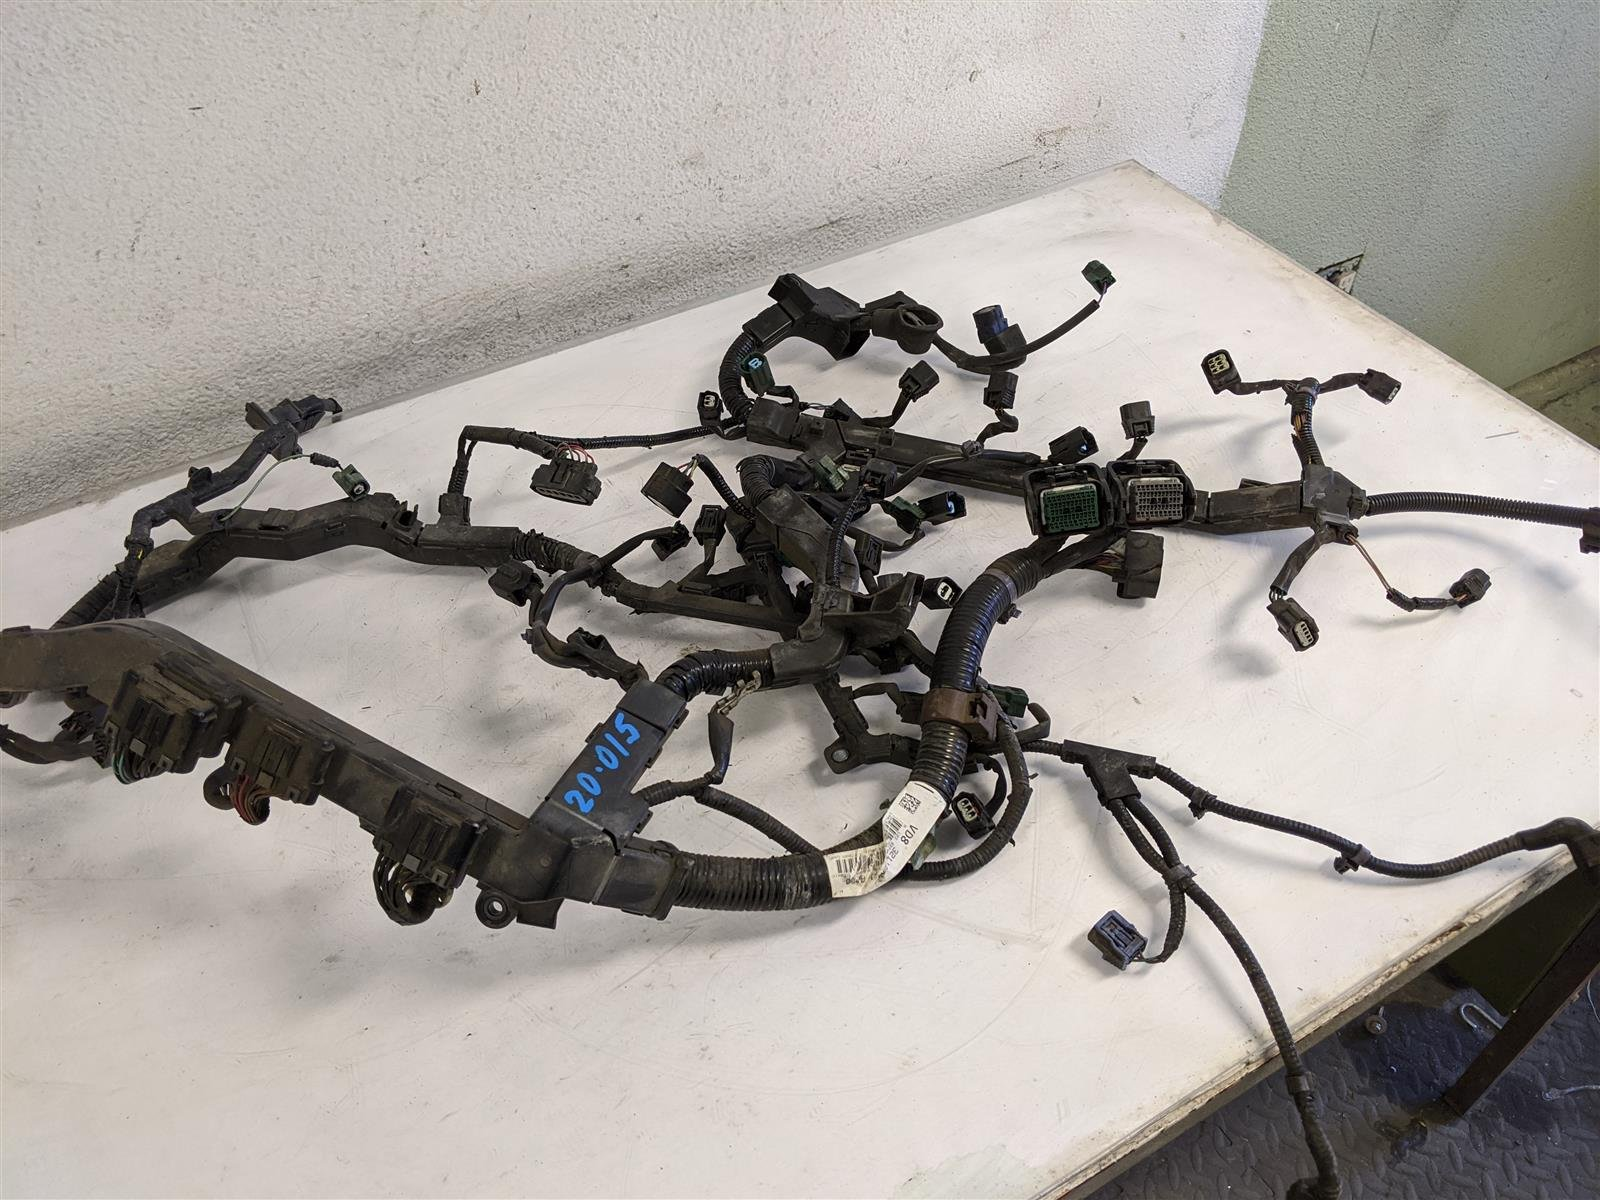 2014 Honda Odyssey Engine Wire Harness Replacement